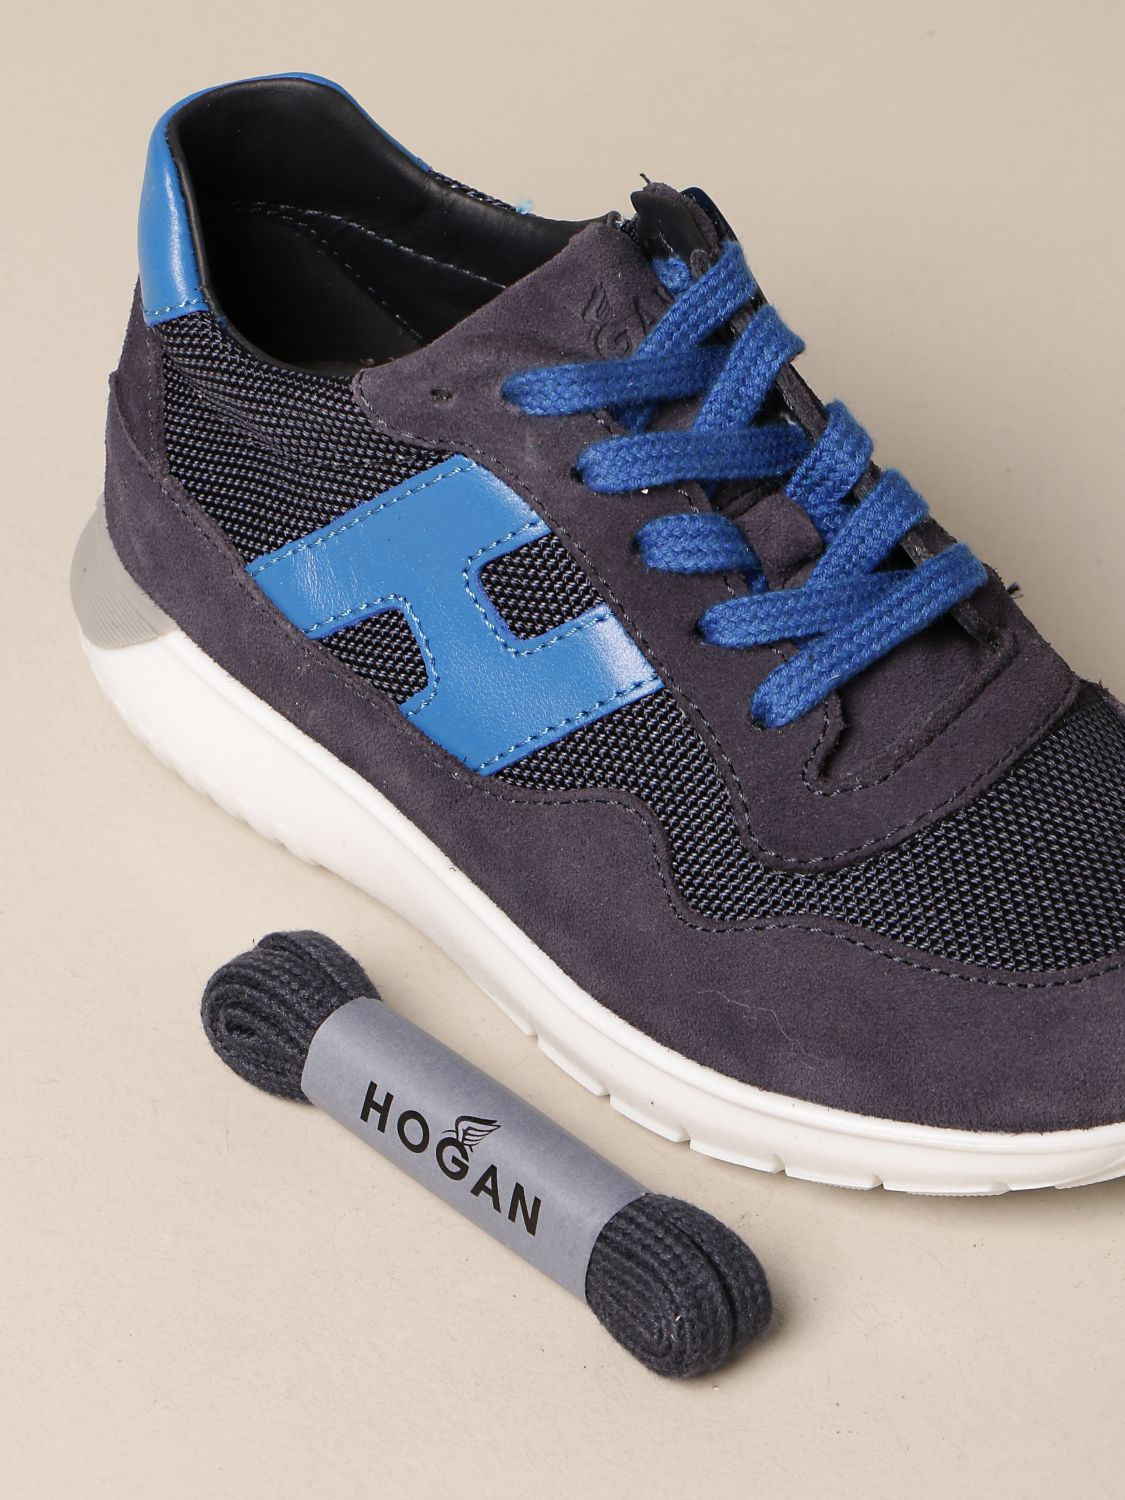 Interactive 3 Hogan sneakers in fabric and suede